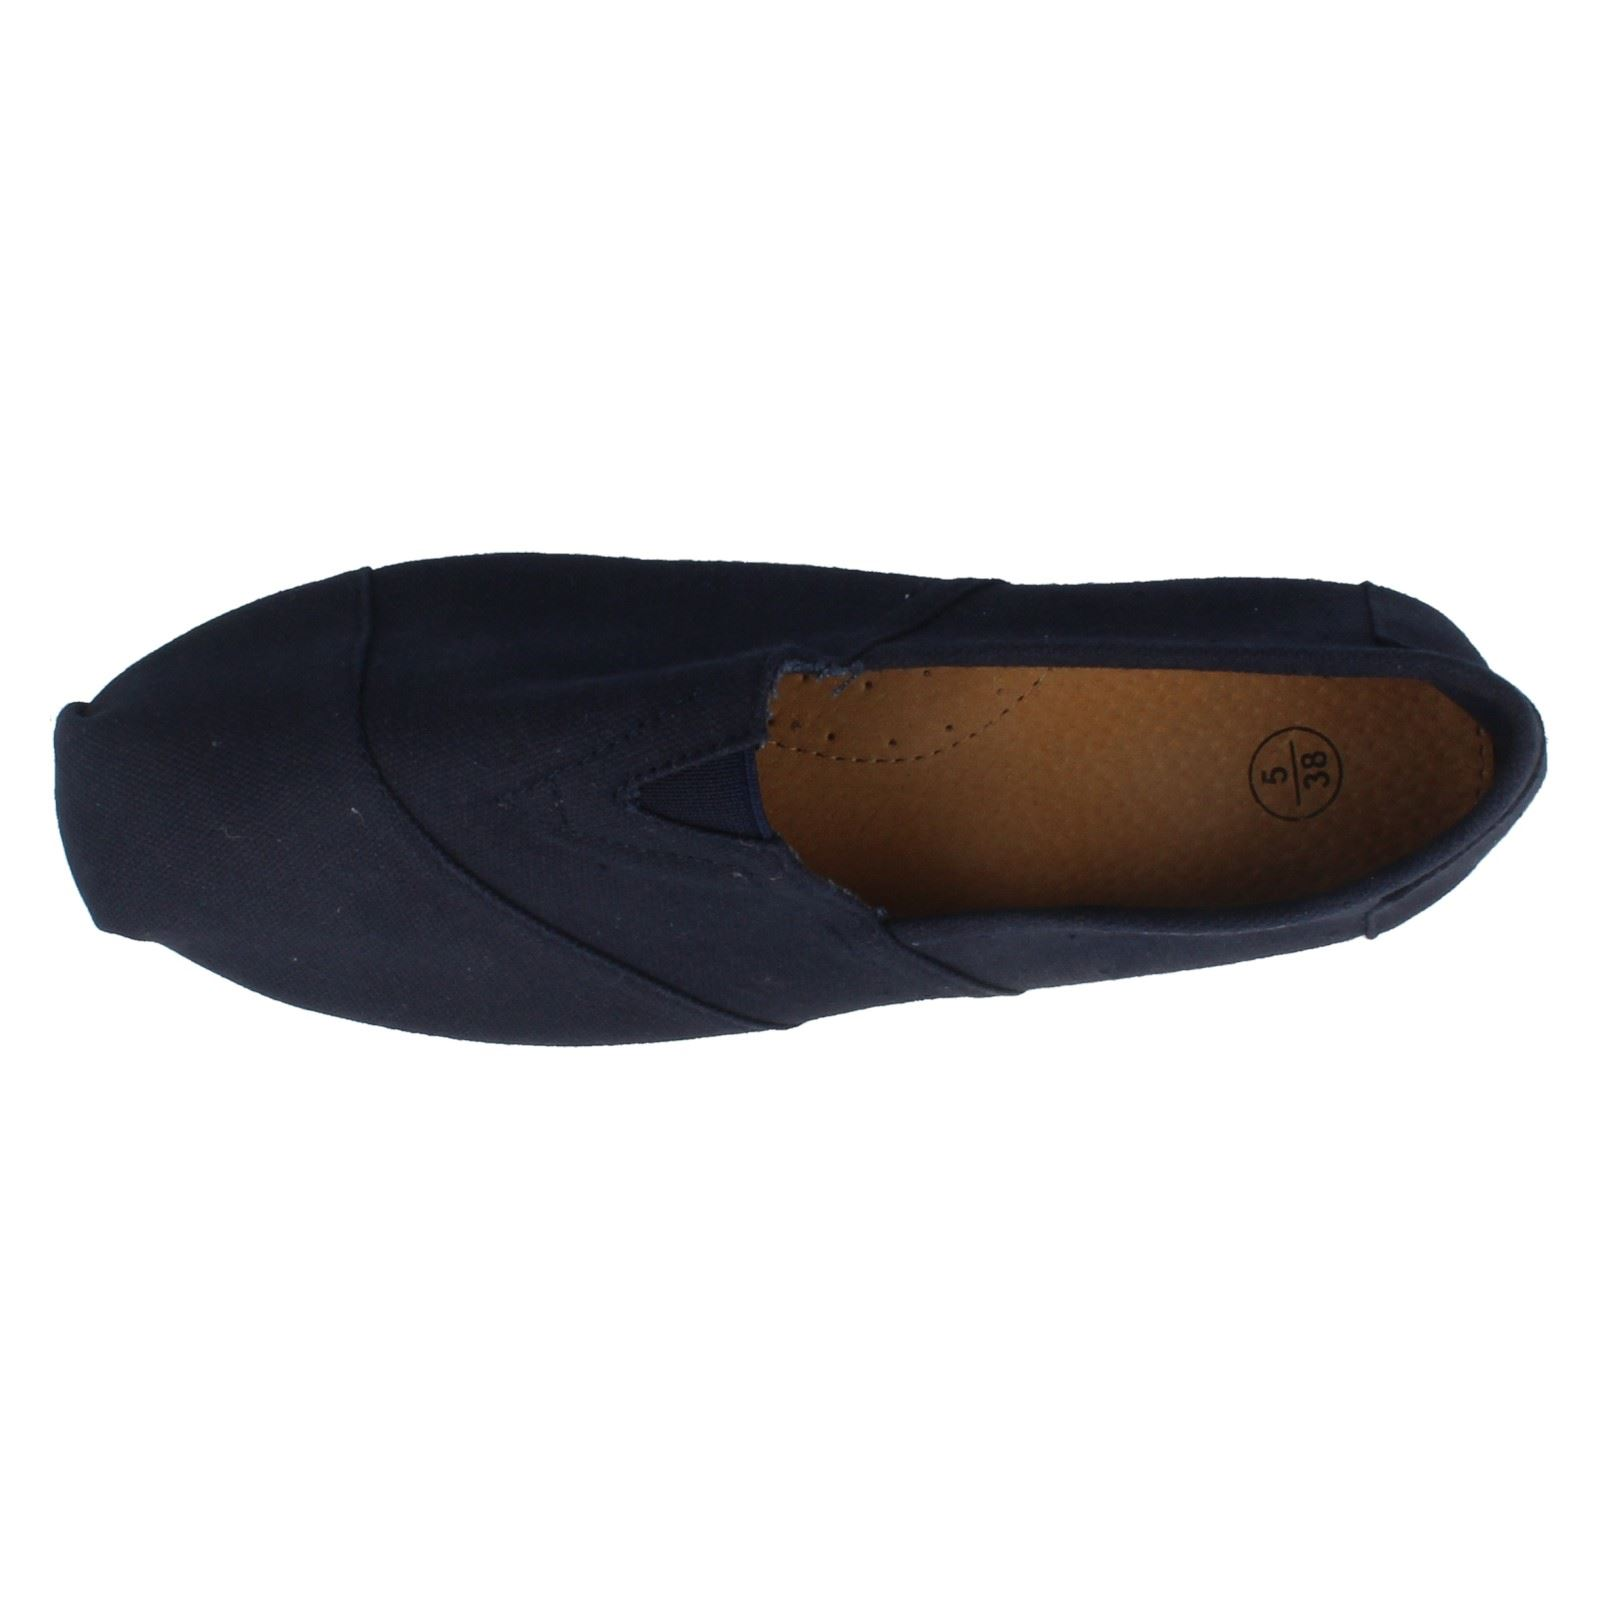 Boys Spot On Casual Slip On Shoes - The Style N1054 ~ N